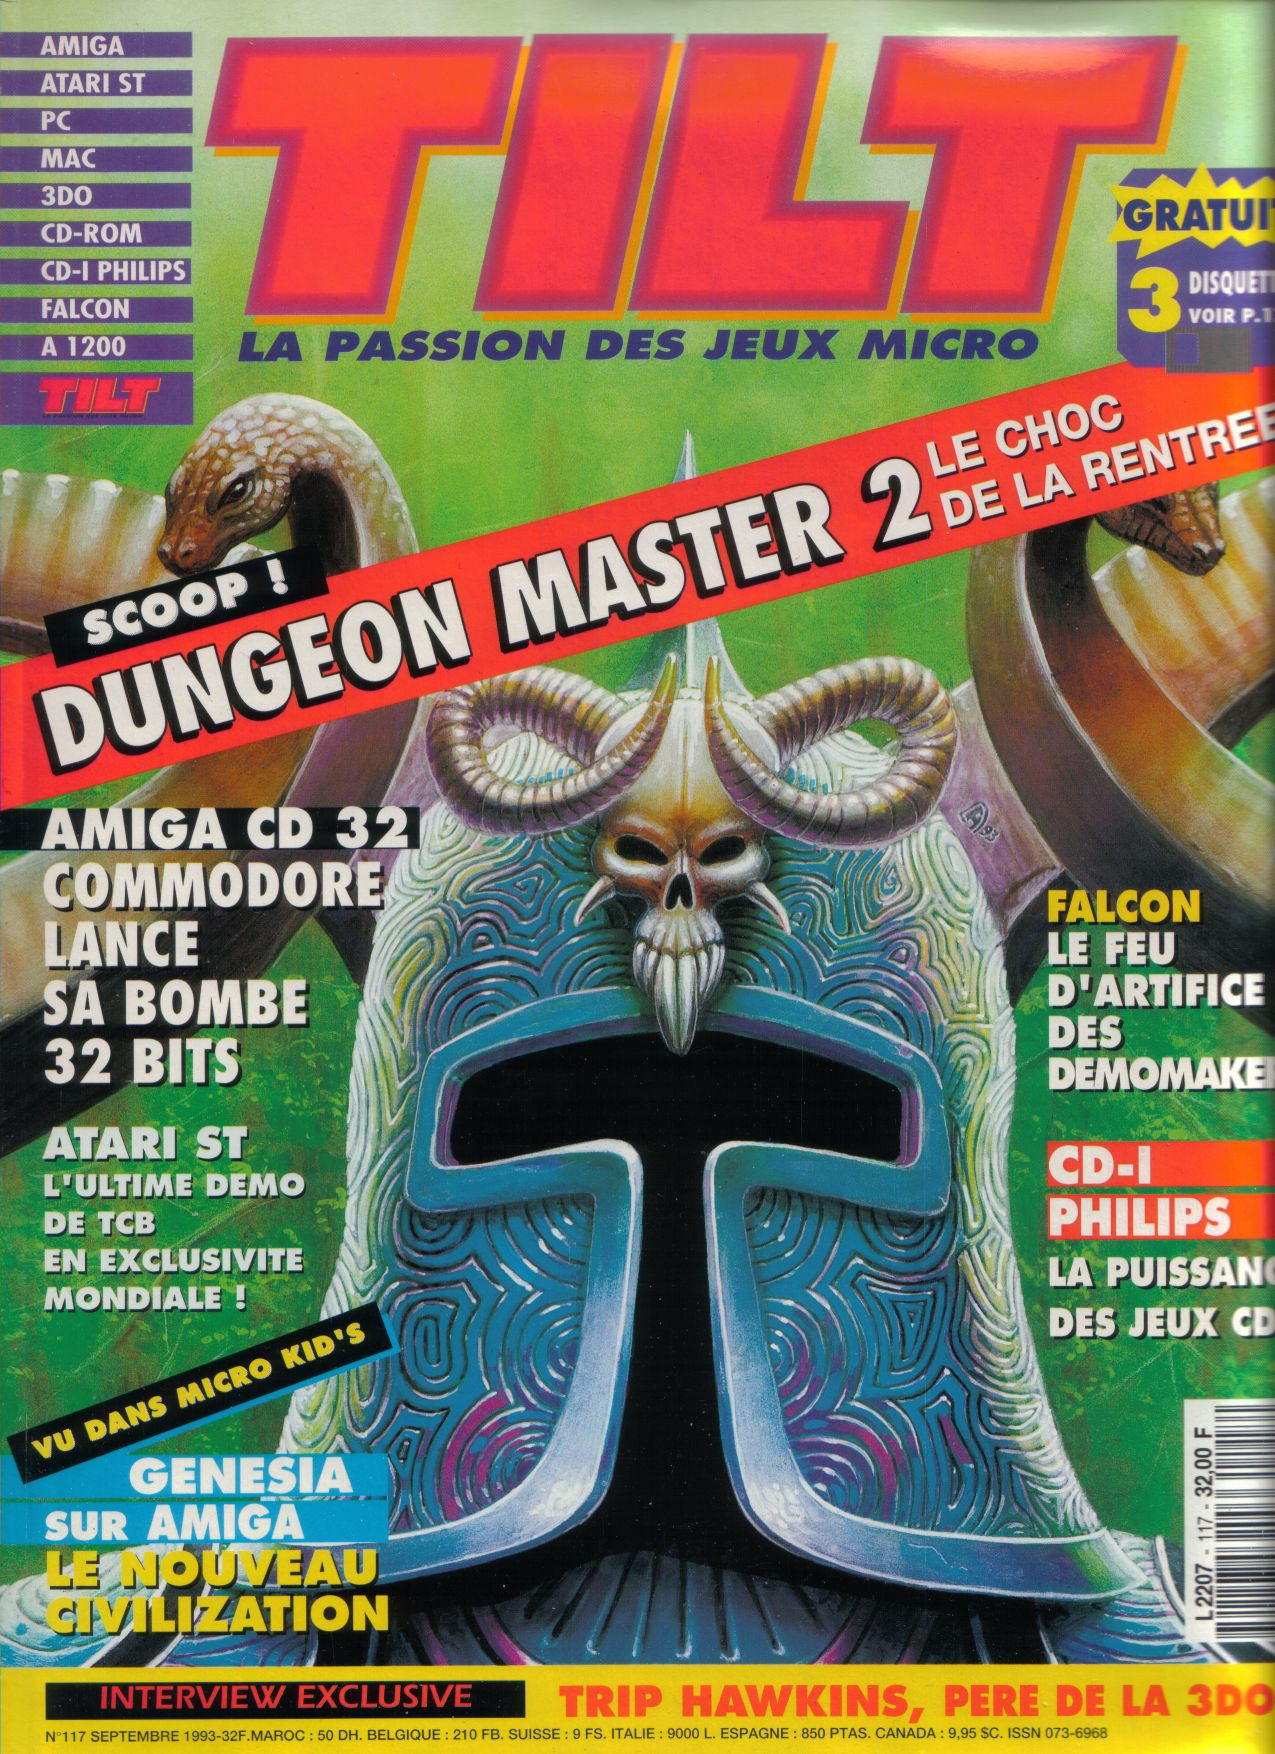 Dungeon Master II for PC / Amiga / Atari ST Preview published in French magazine 'Tilt', Issue #117, September 1993, Cover